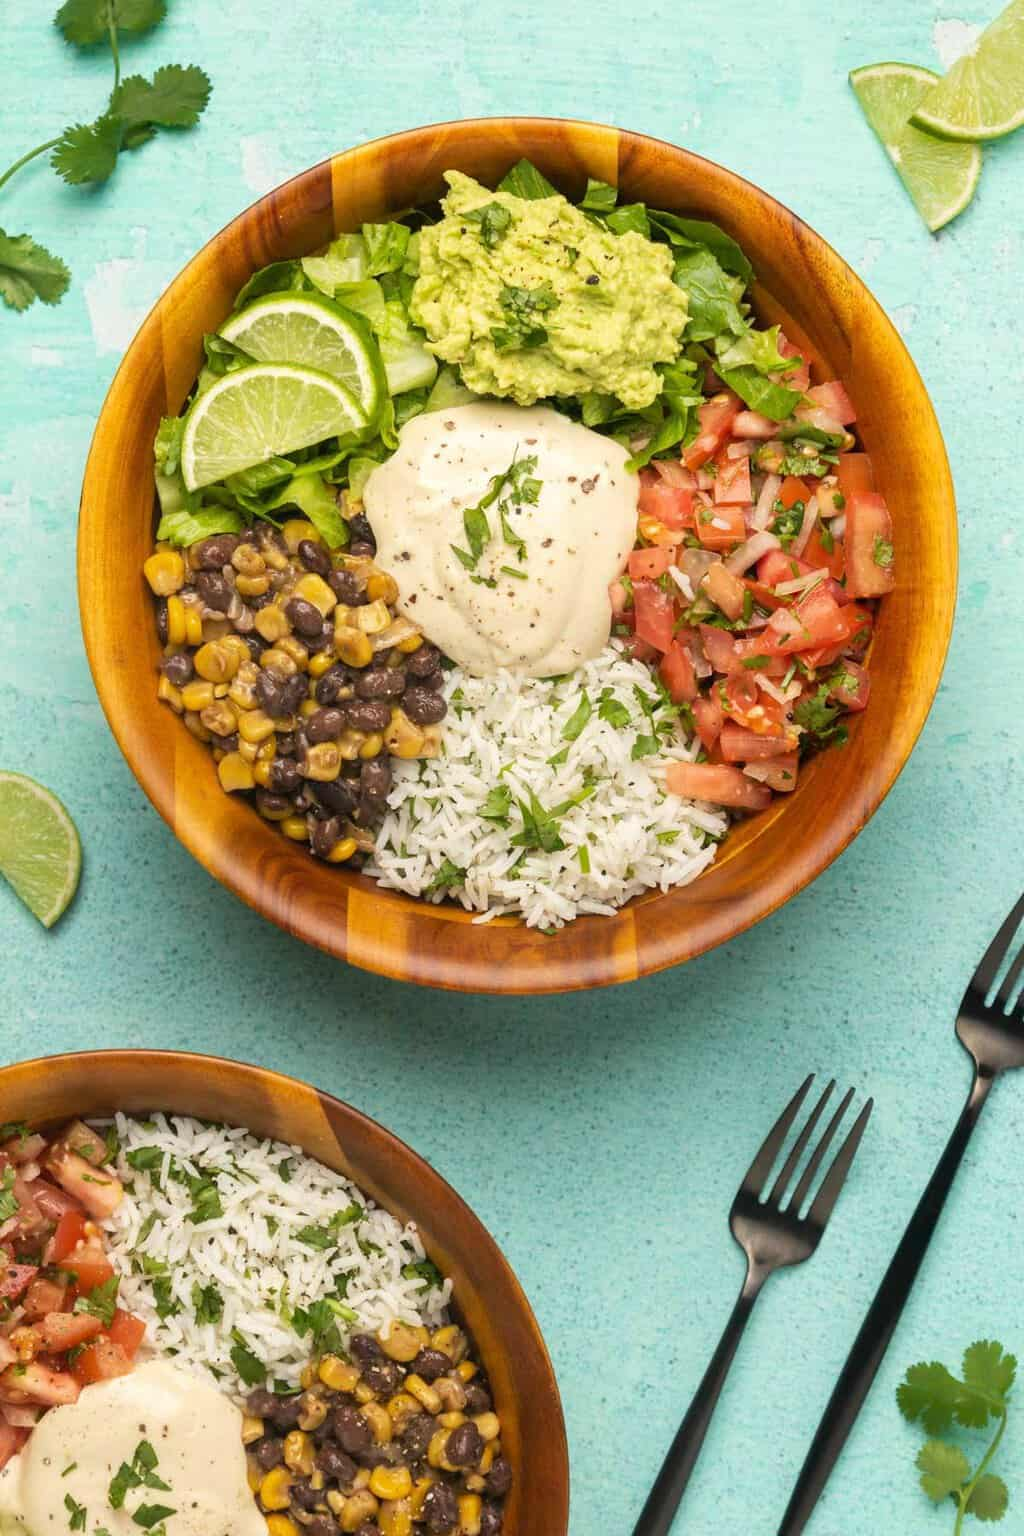 Vegan burrito bowls with cilantro lime rice, black beans and corn, pico de gallo, lettuce, guacamole and vegan sour cream.